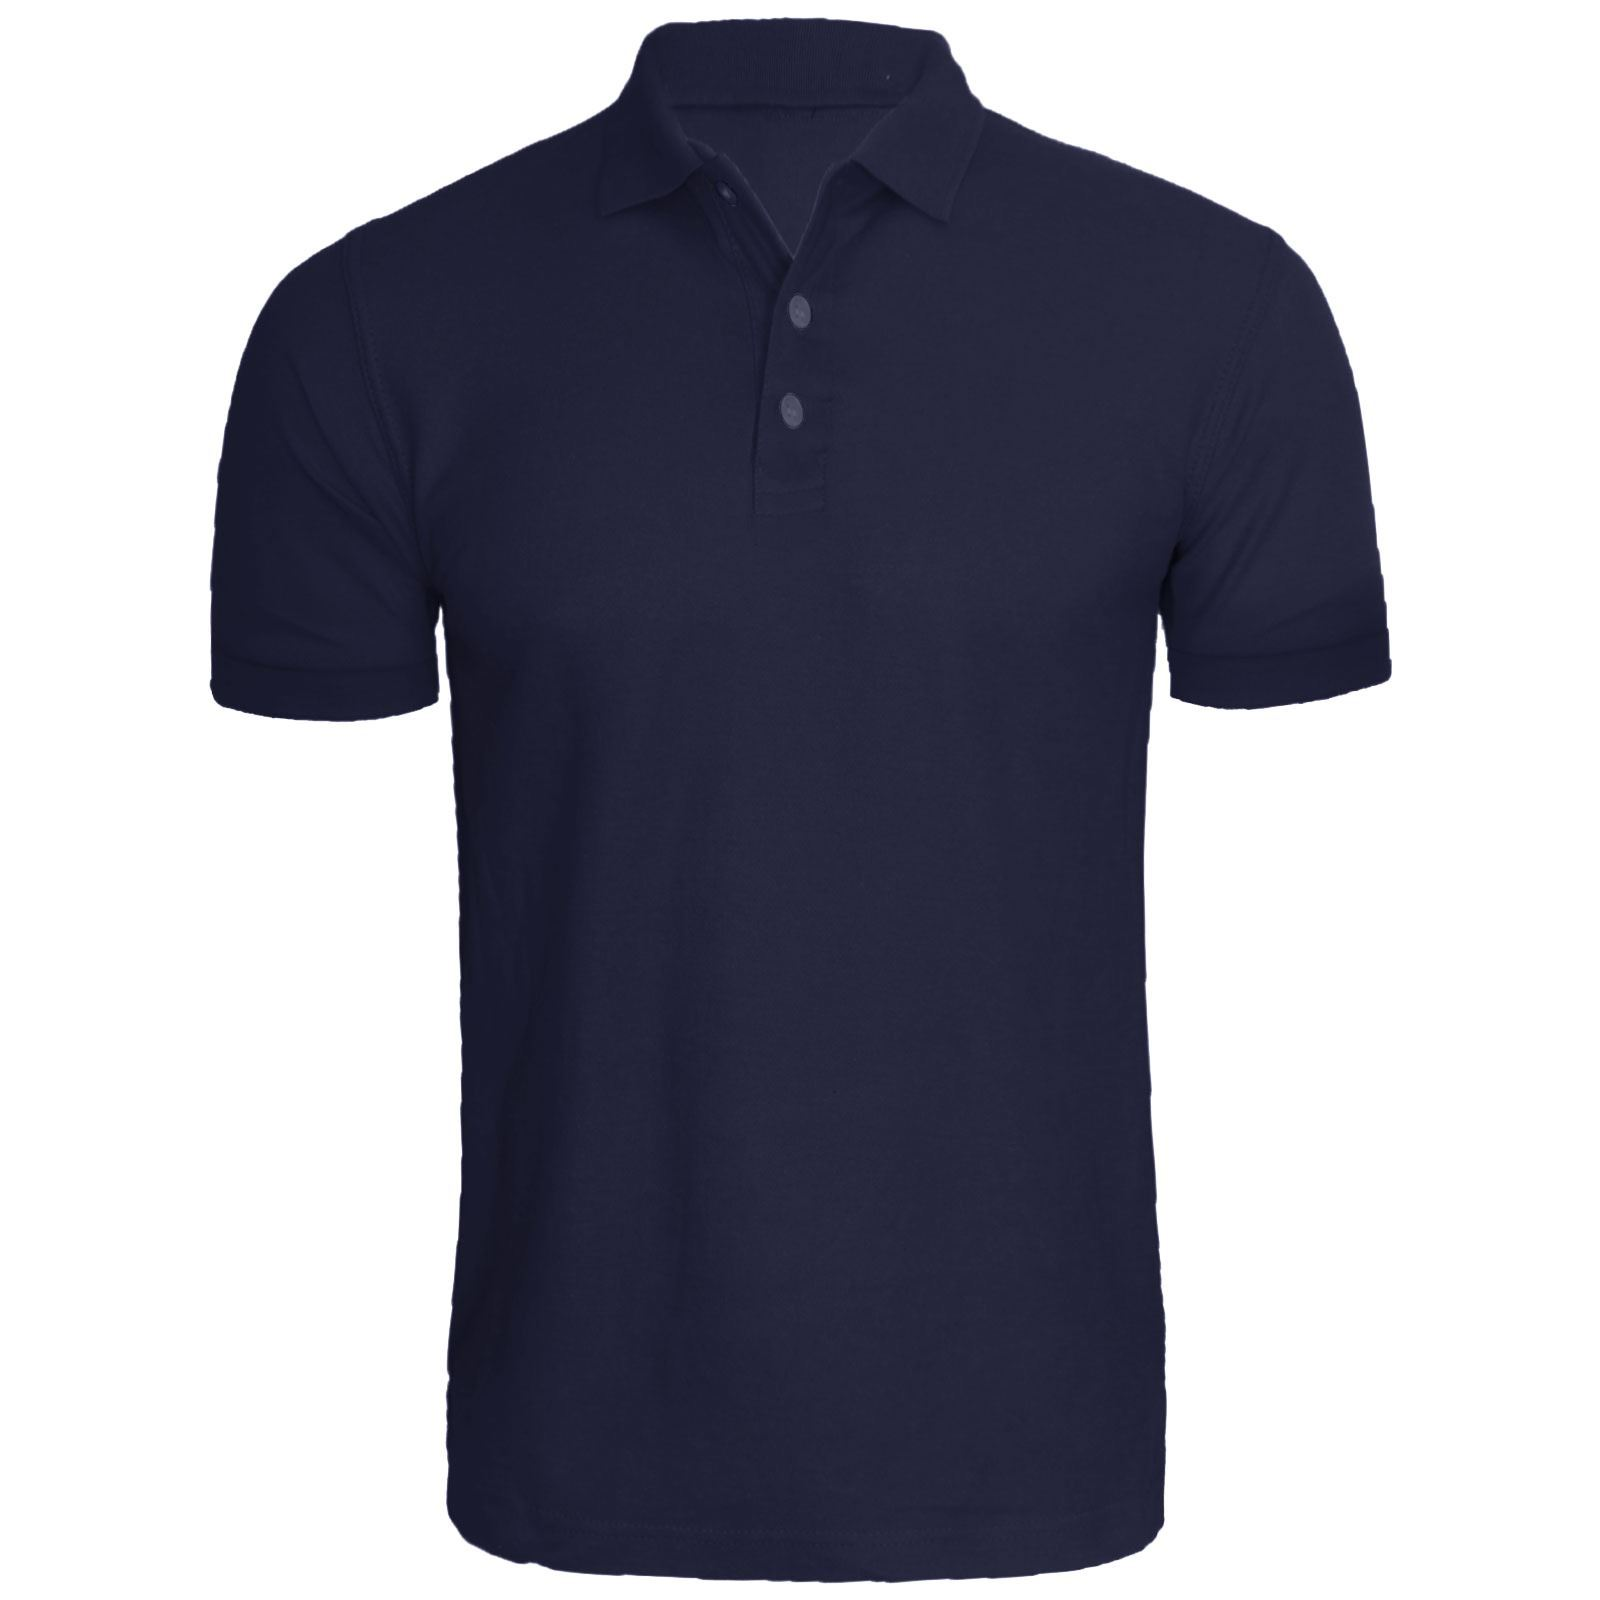 Men 39 S Polo Shirt Mens Summer T Shirt Short Sleeve Plain